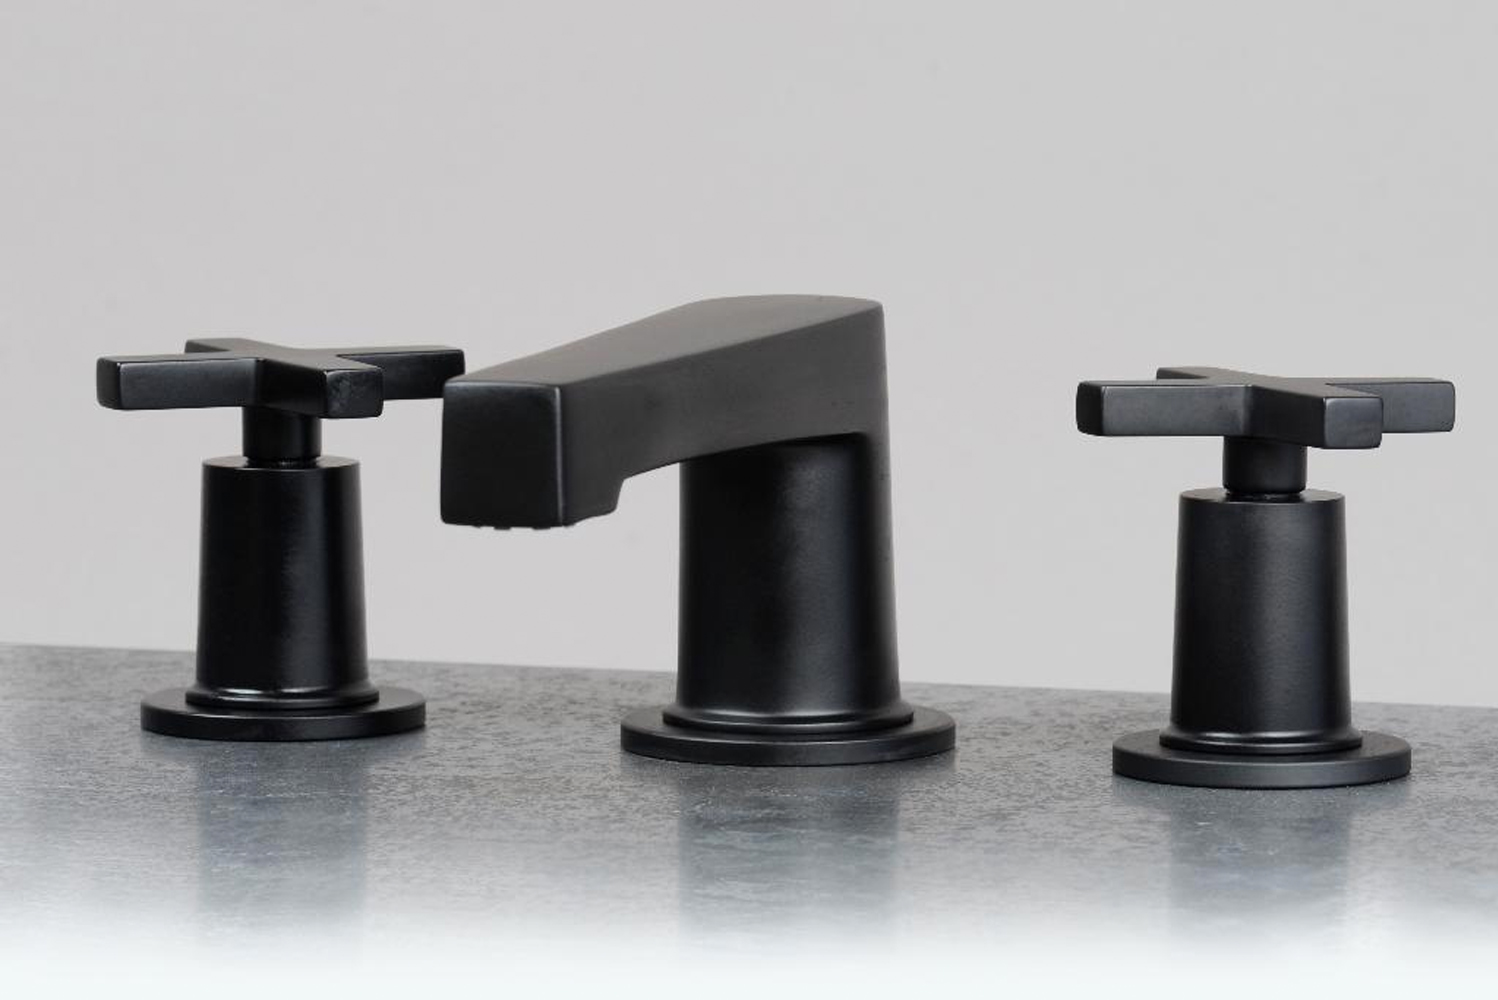 Newport Brass released a new bath faucet called Dorrance.